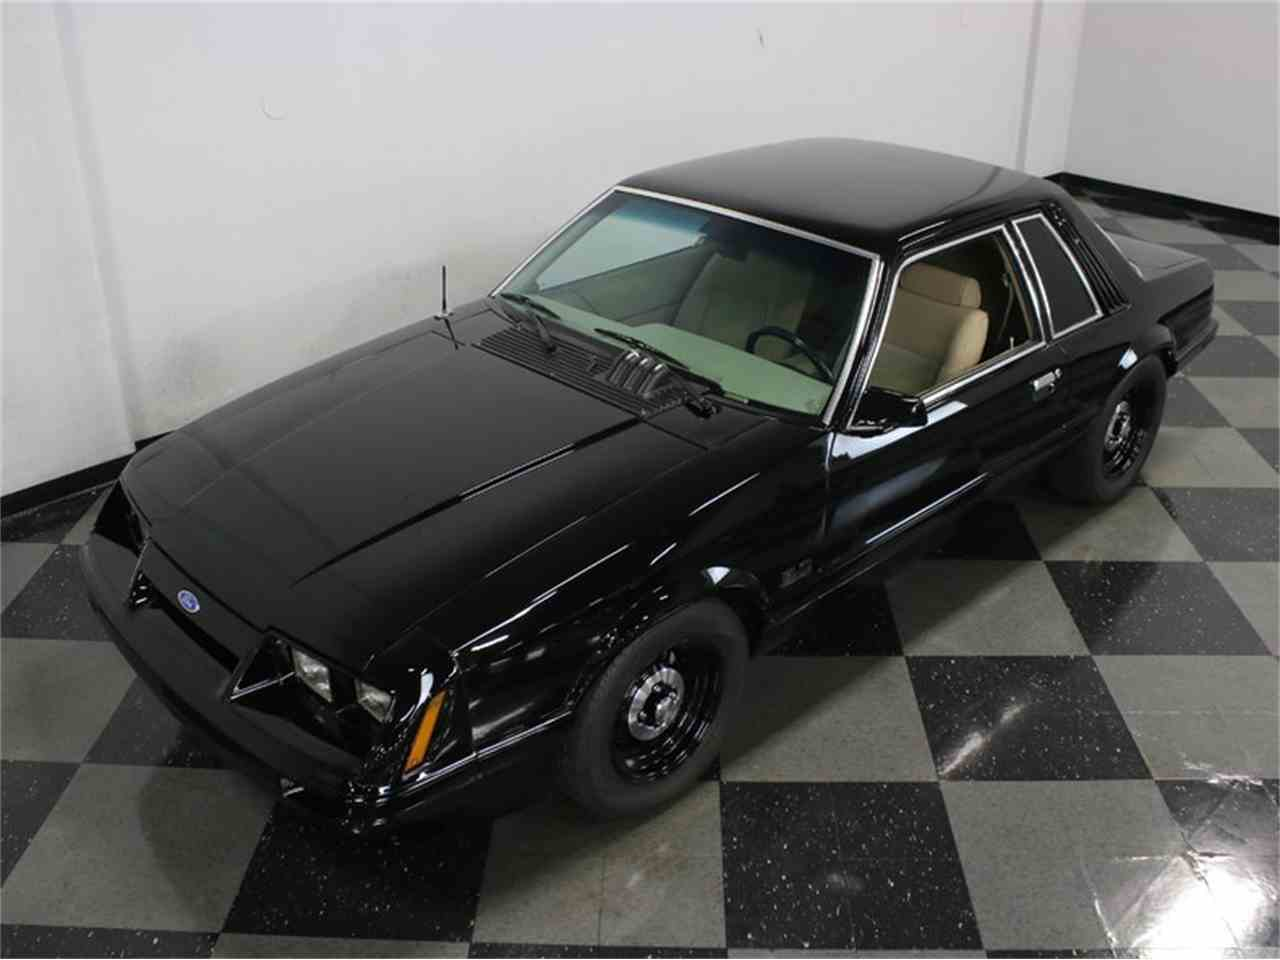 Large Picture of '86 Ford Mustang SSP Interceptor Offered by Streetside Classics - Dallas / Fort Worth - JZNT